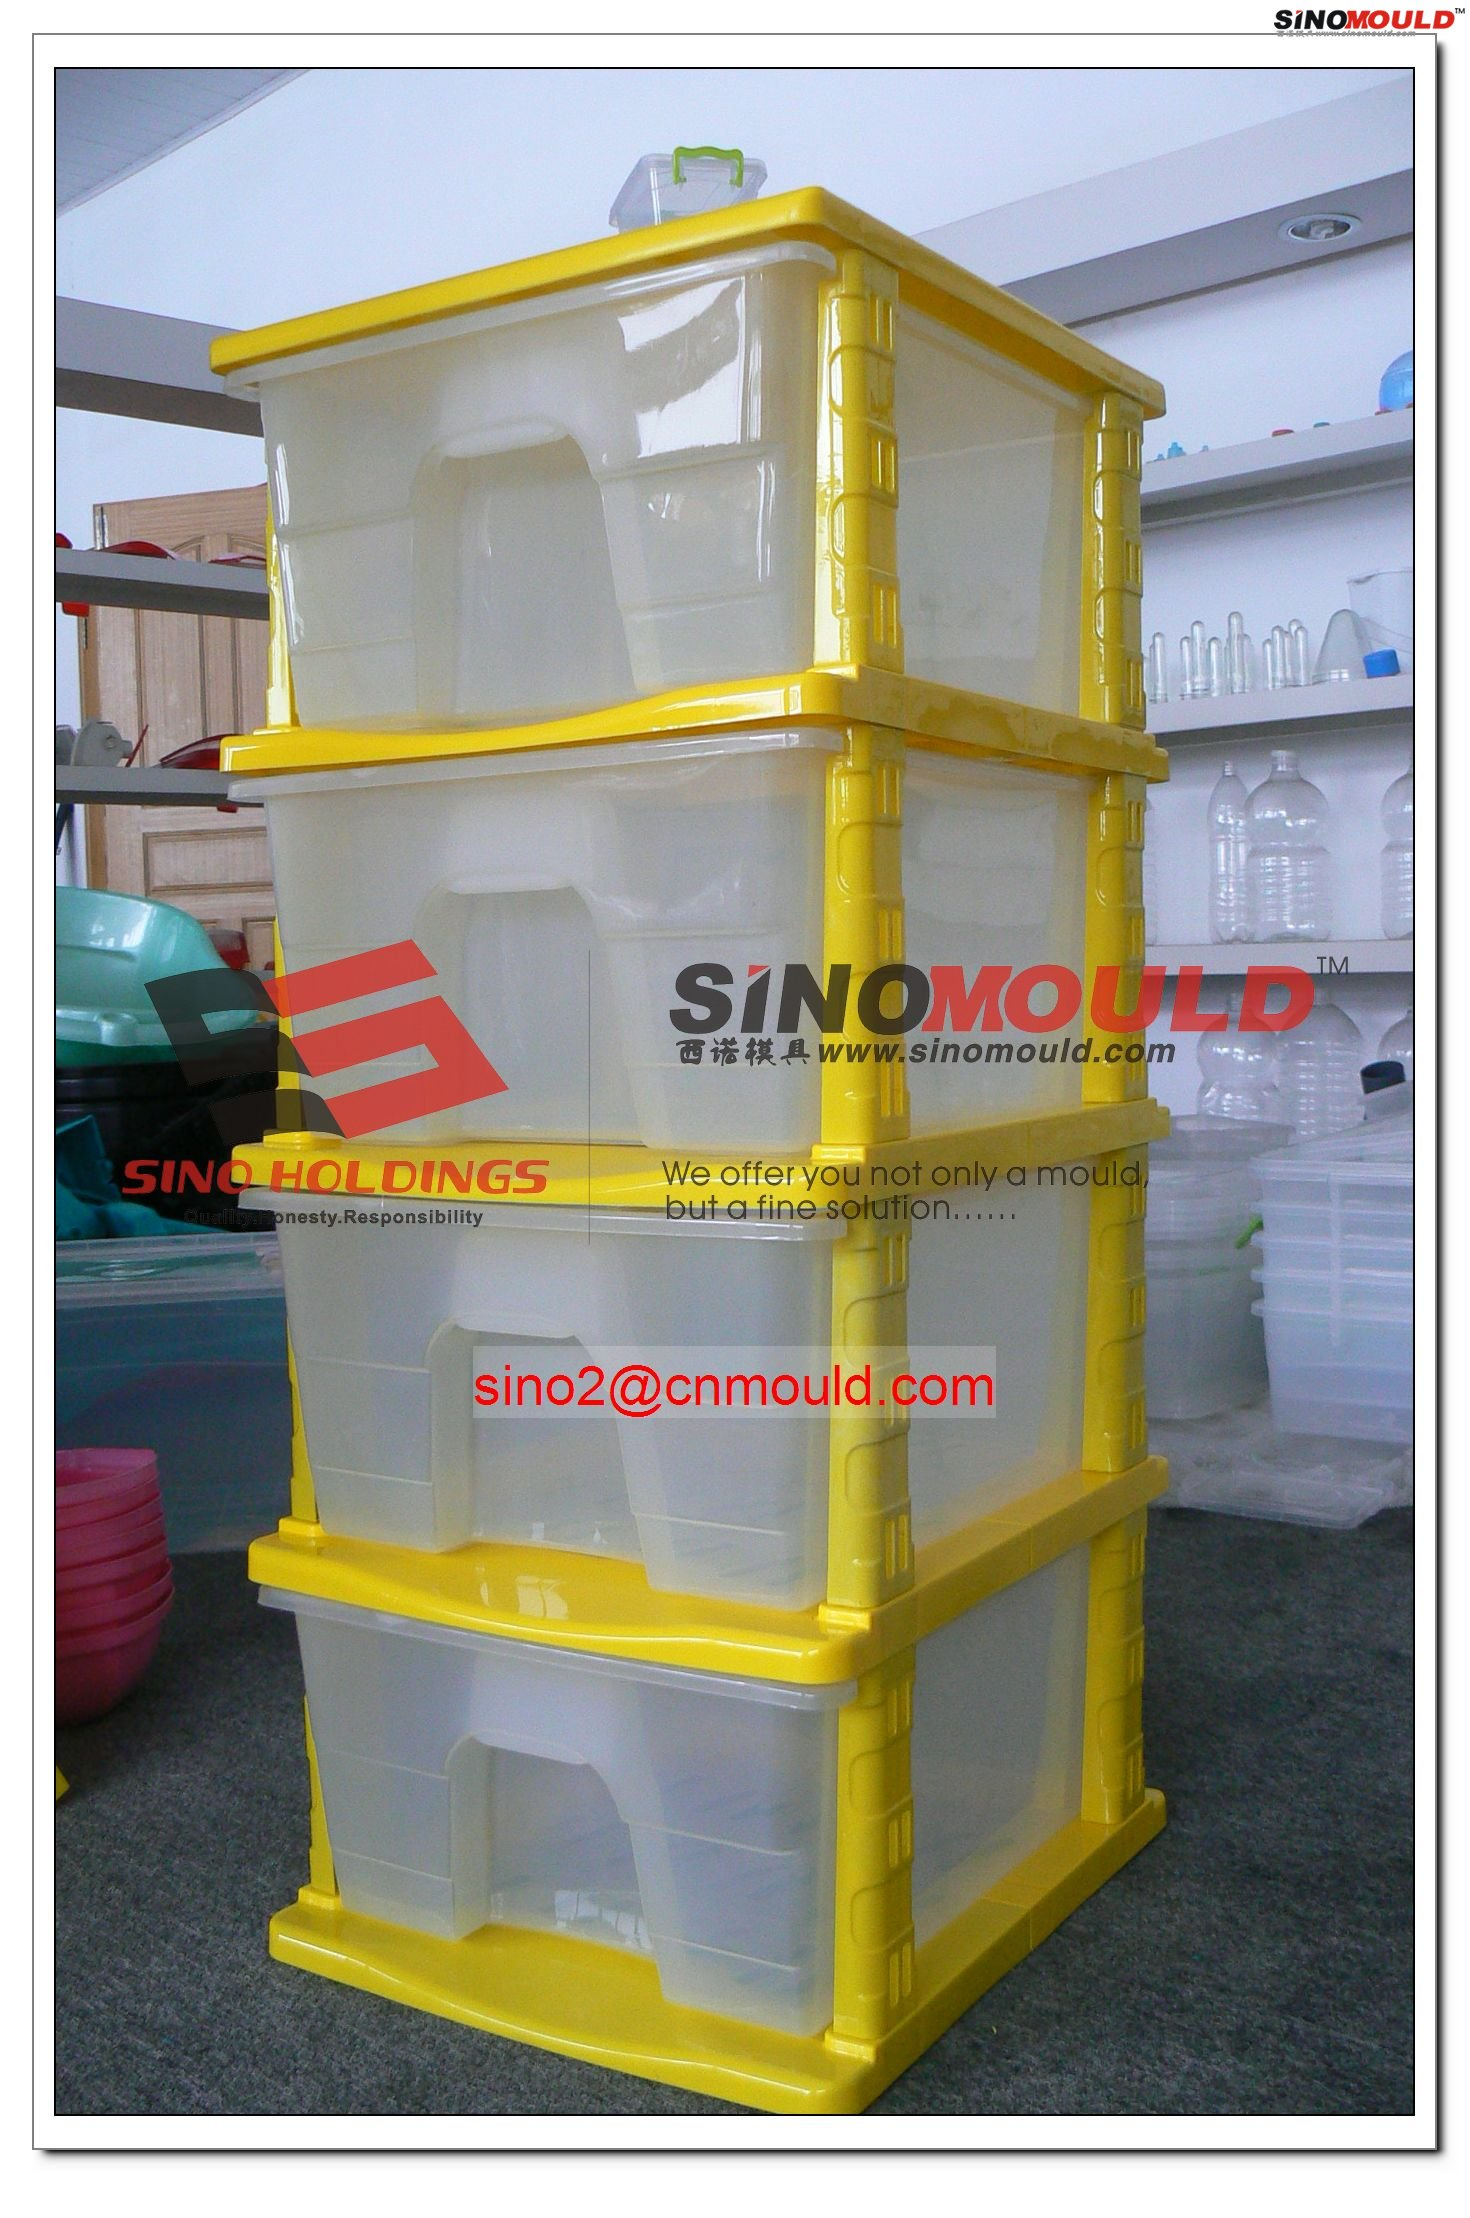 Injection Drawer Mold Cnmould